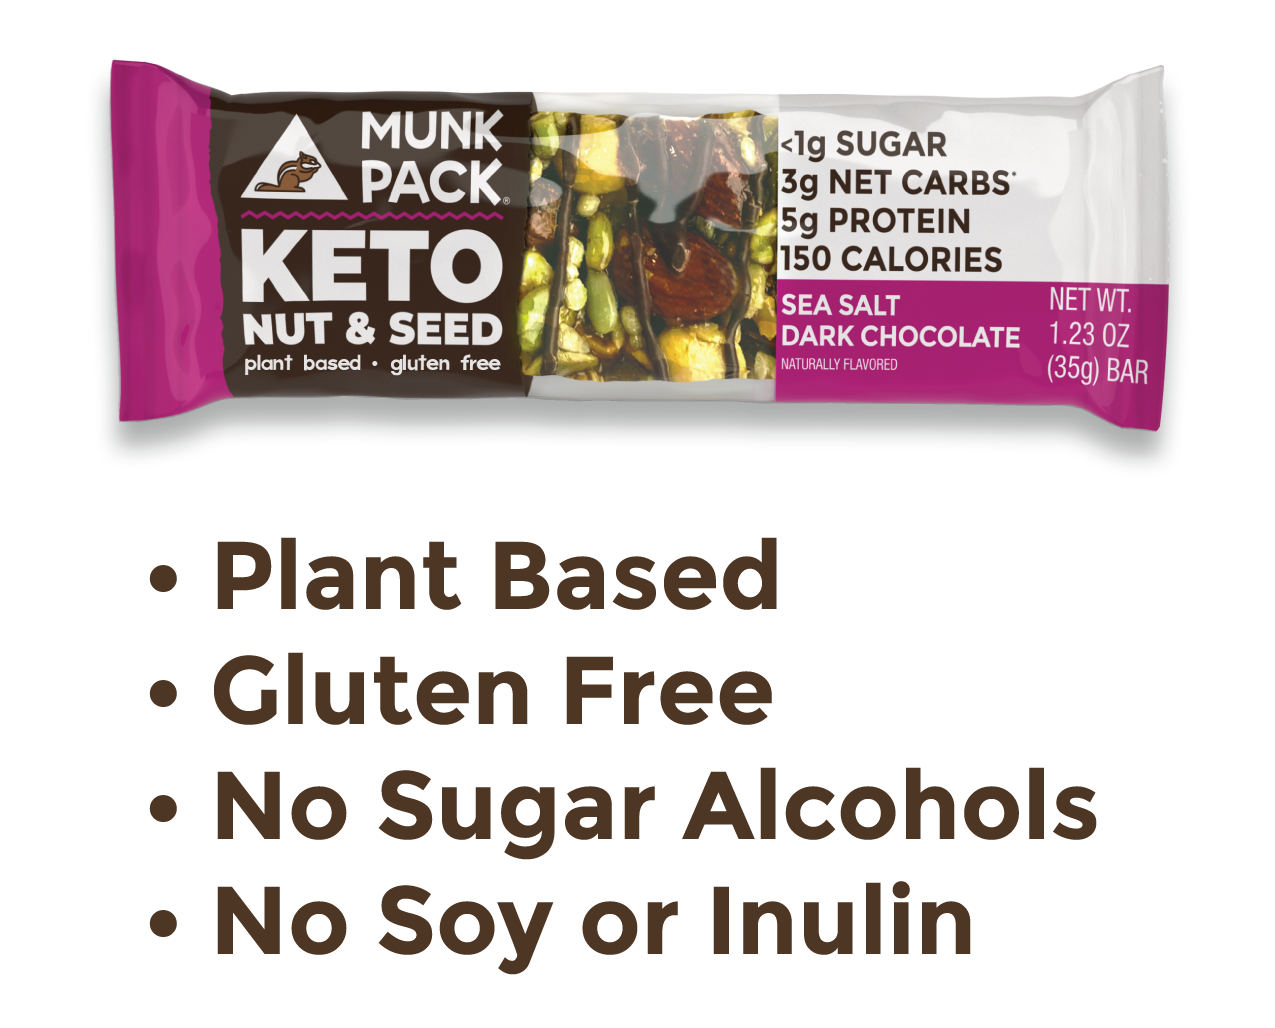 Keto Nut & Seed Bar | Plant Based, Gluten Free, No Sugar Alcohols, No Soy or Inulin